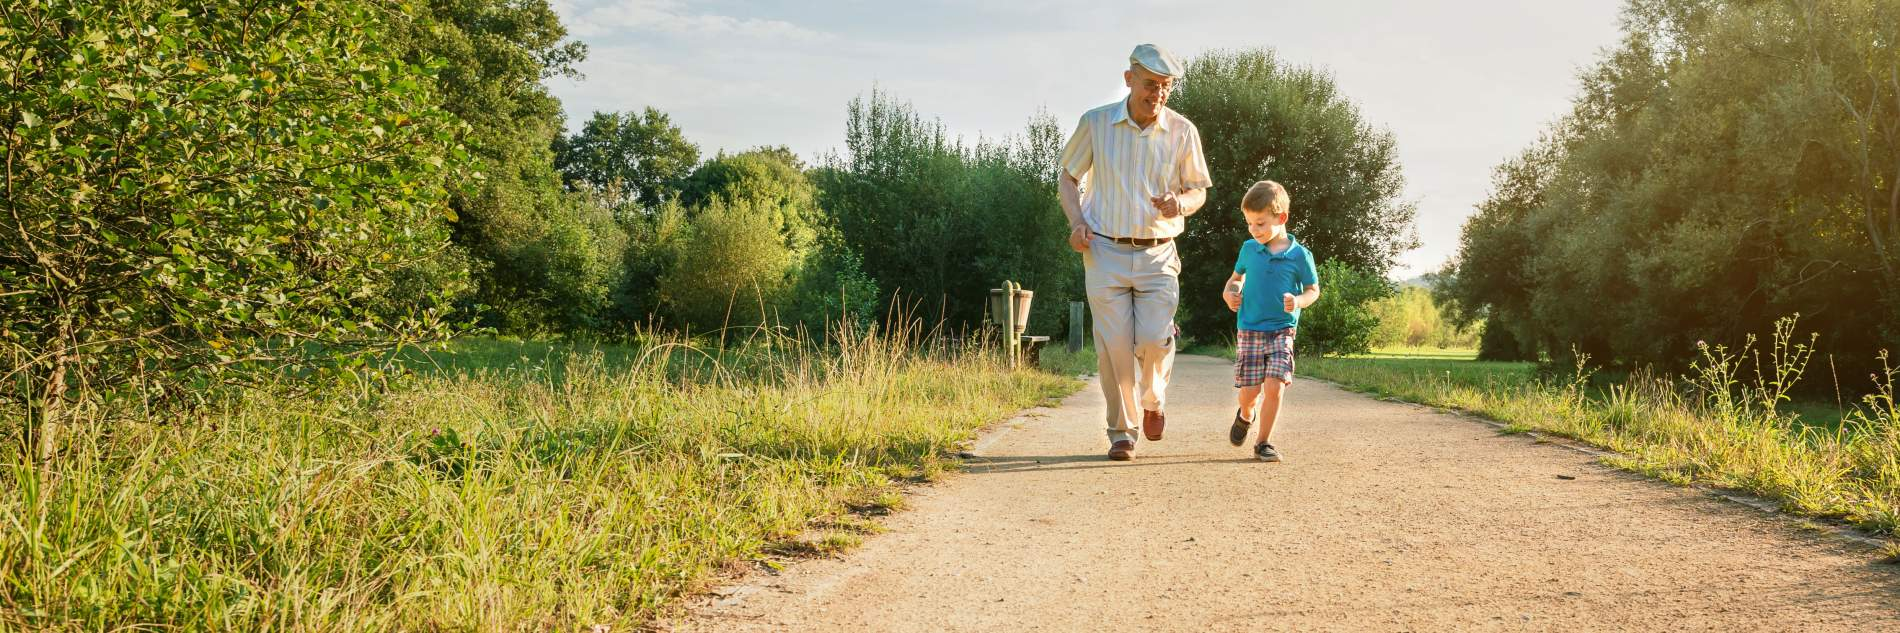 Grandfather and grandson running